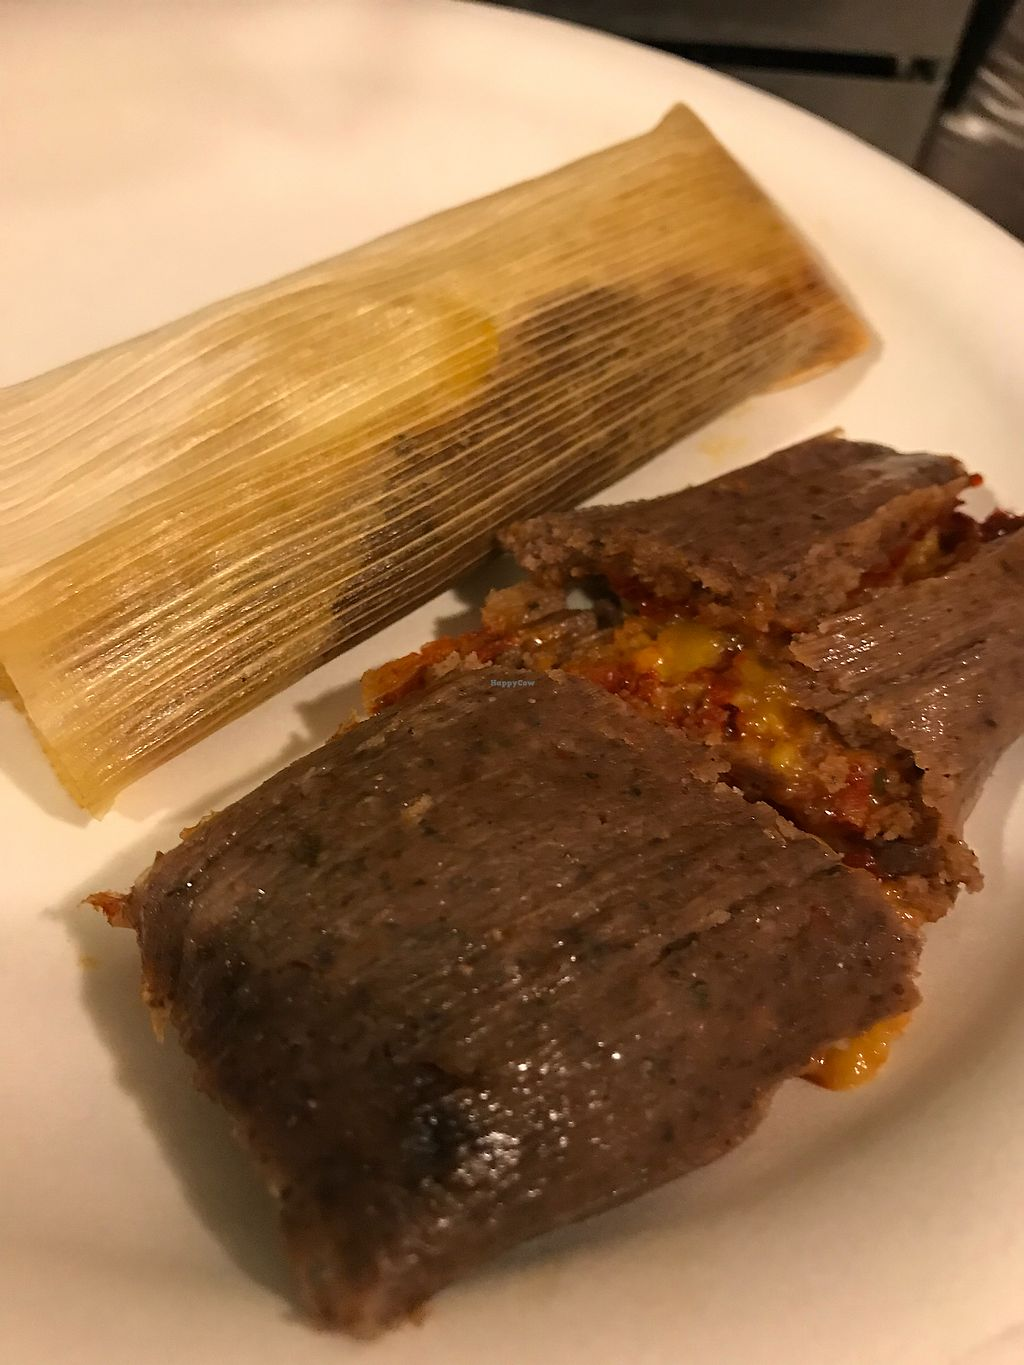 """Photo of The Vegan Tamale Company  by <a href=""""/members/profile/xmrfigx"""">xmrfigx</a> <br/>Red chile and cheez (my fav!) <br/> December 26, 2017  - <a href='/contact/abuse/image/105916/339283'>Report</a>"""